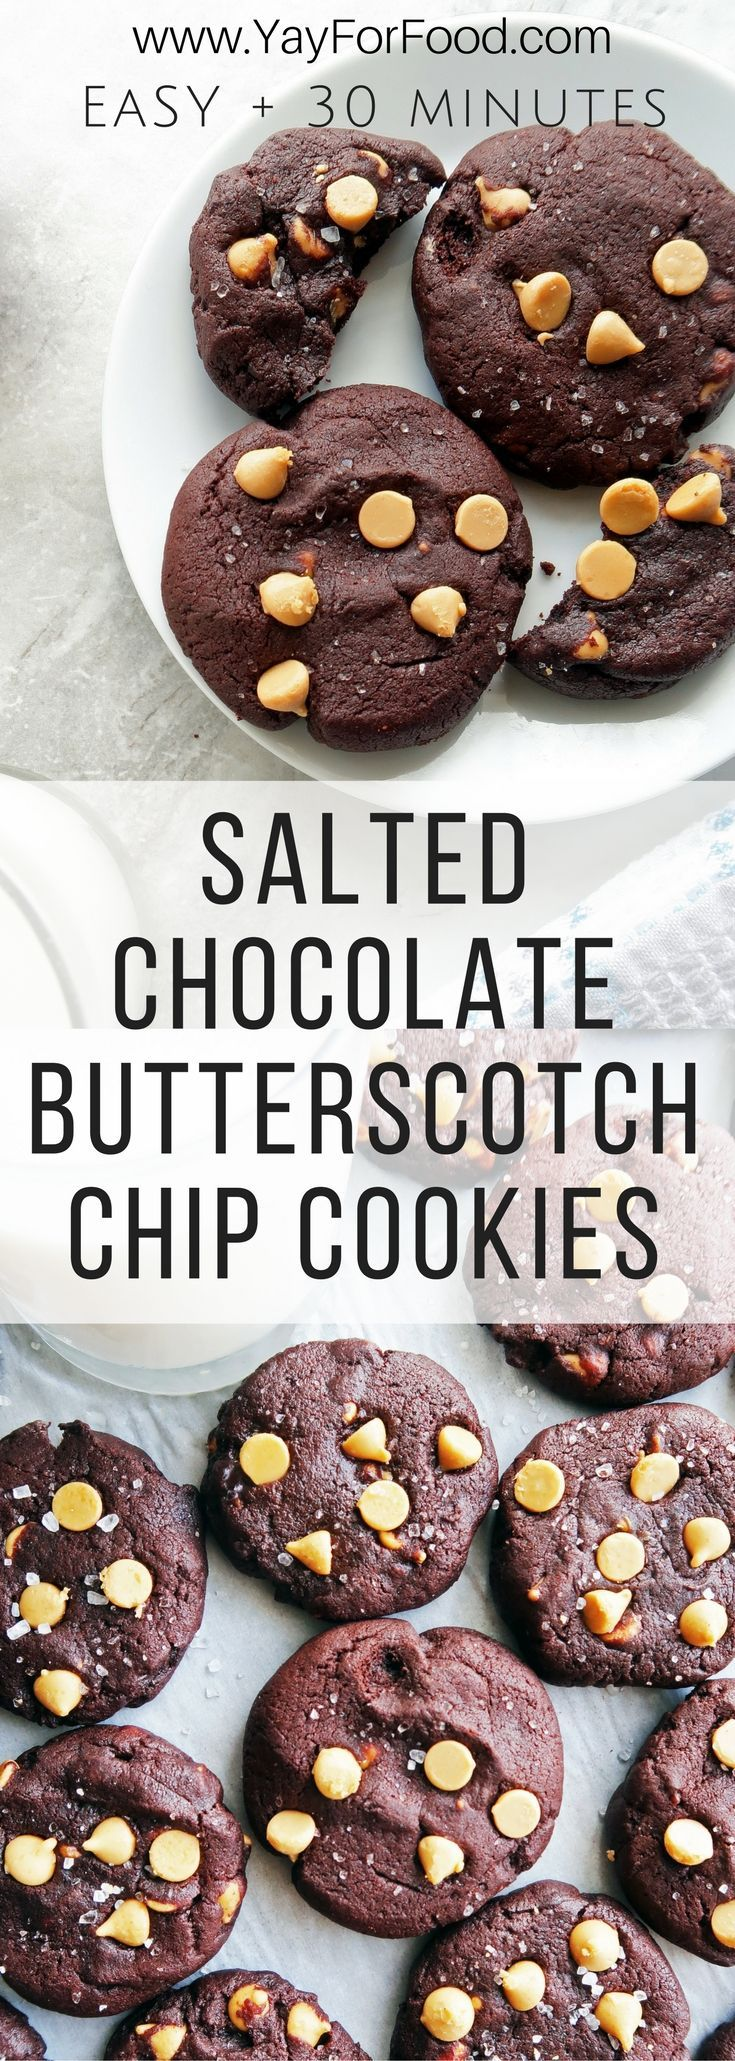 These cookies are soft, thick, buttery, melt-in-your-mouth chocolatey butterscotch goodness. A no-fuss 30 minute cookie recipe that makes 24 sweet treats! Desserts | Cookies | Snacks | Chocolate Cookie | Butterscotch Chip Cookie | Easy Desserts